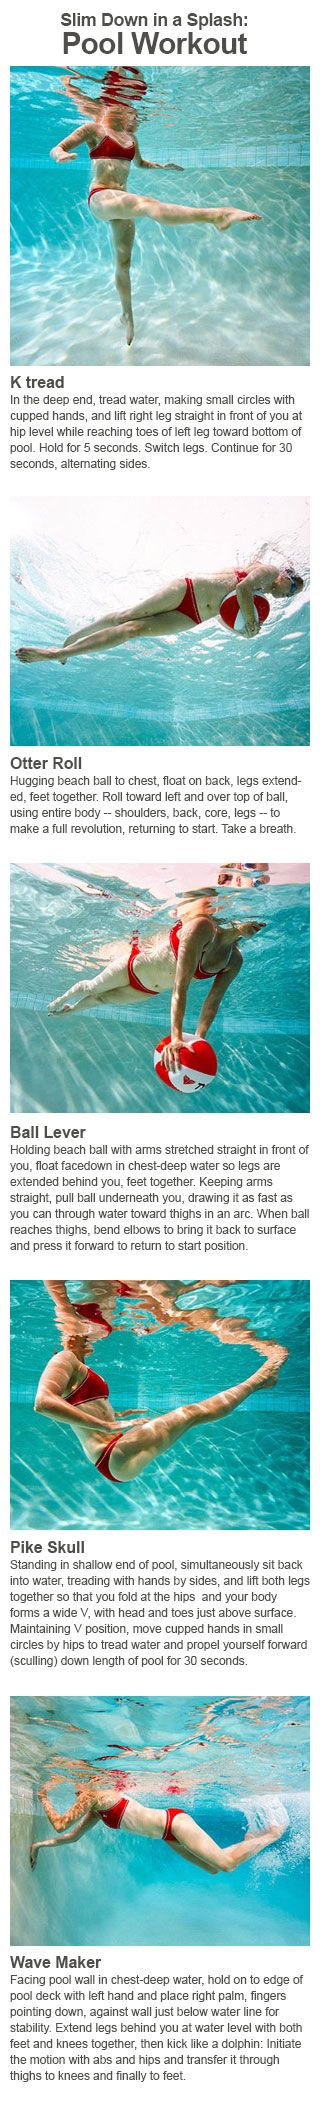 I didn't realize I did the modifications of these all the time while I'm waiting for a swim lesson! Now I know the real way to do it! @Emily Schoenfeld Schoenfeld Strickland